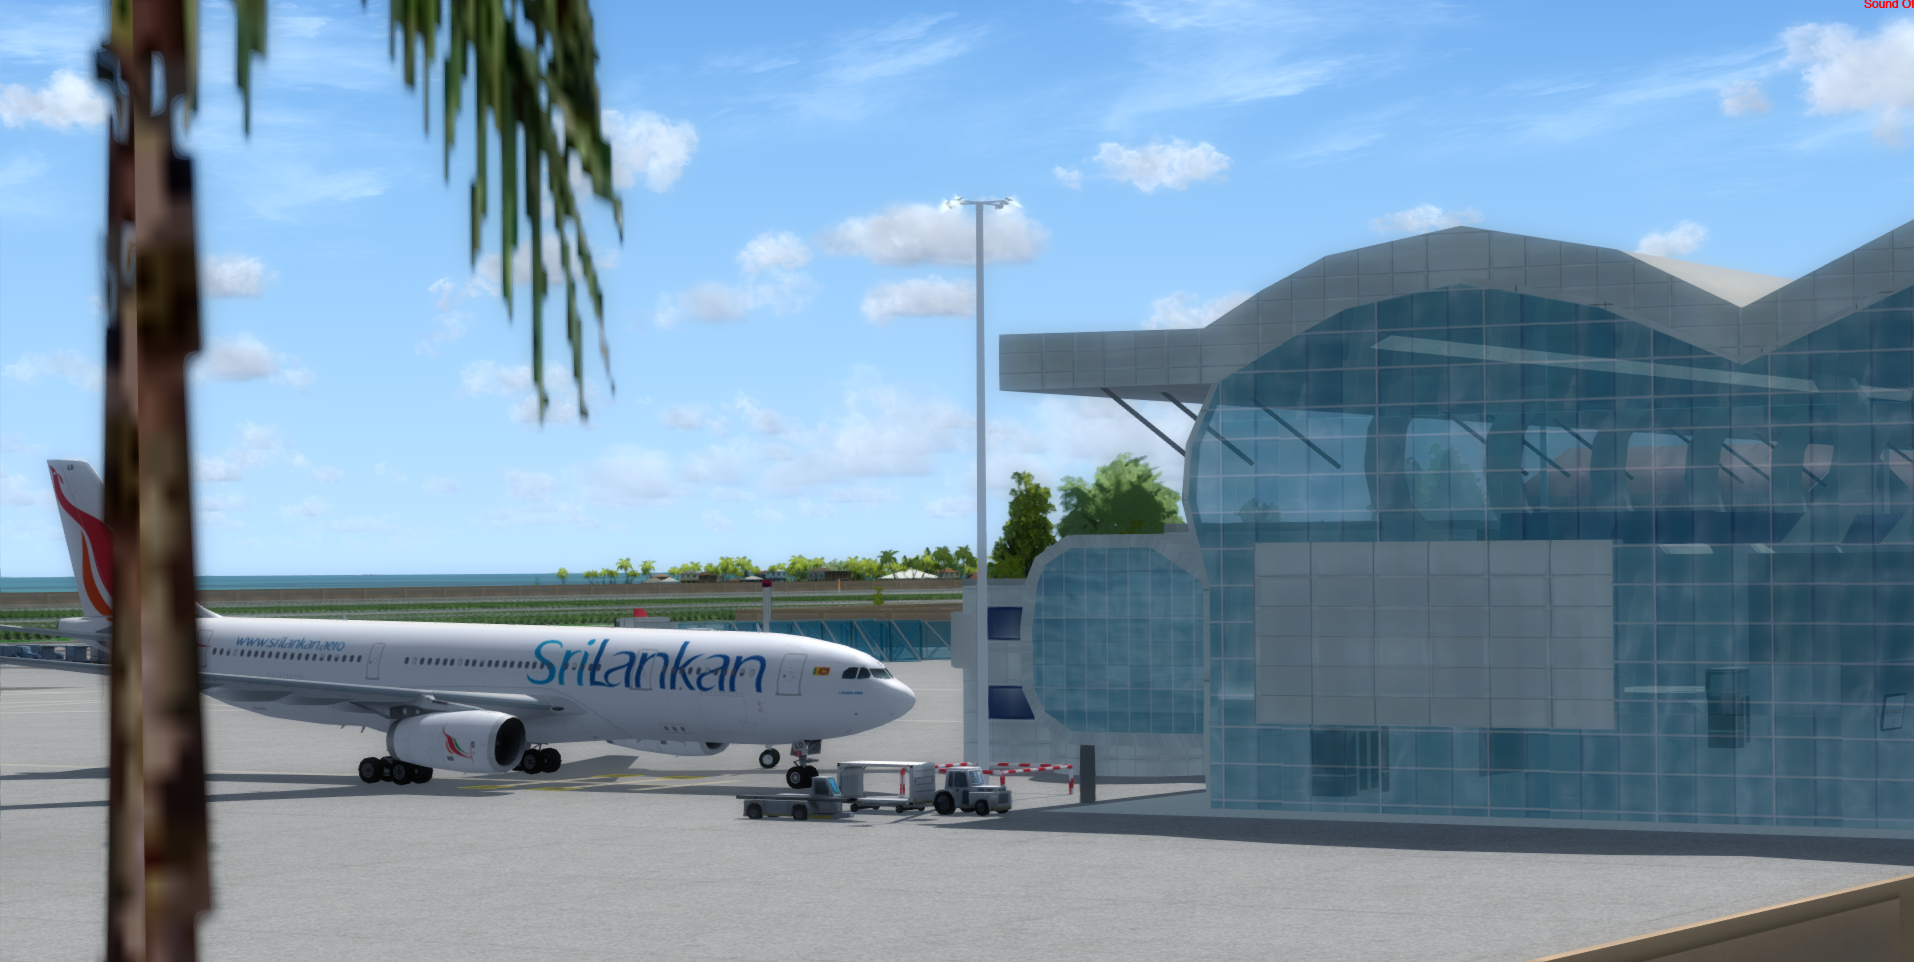 STINN PACIFIC -  VOTV (TRIVANDRUM INTERNATIONAL AIRPORT) P3D